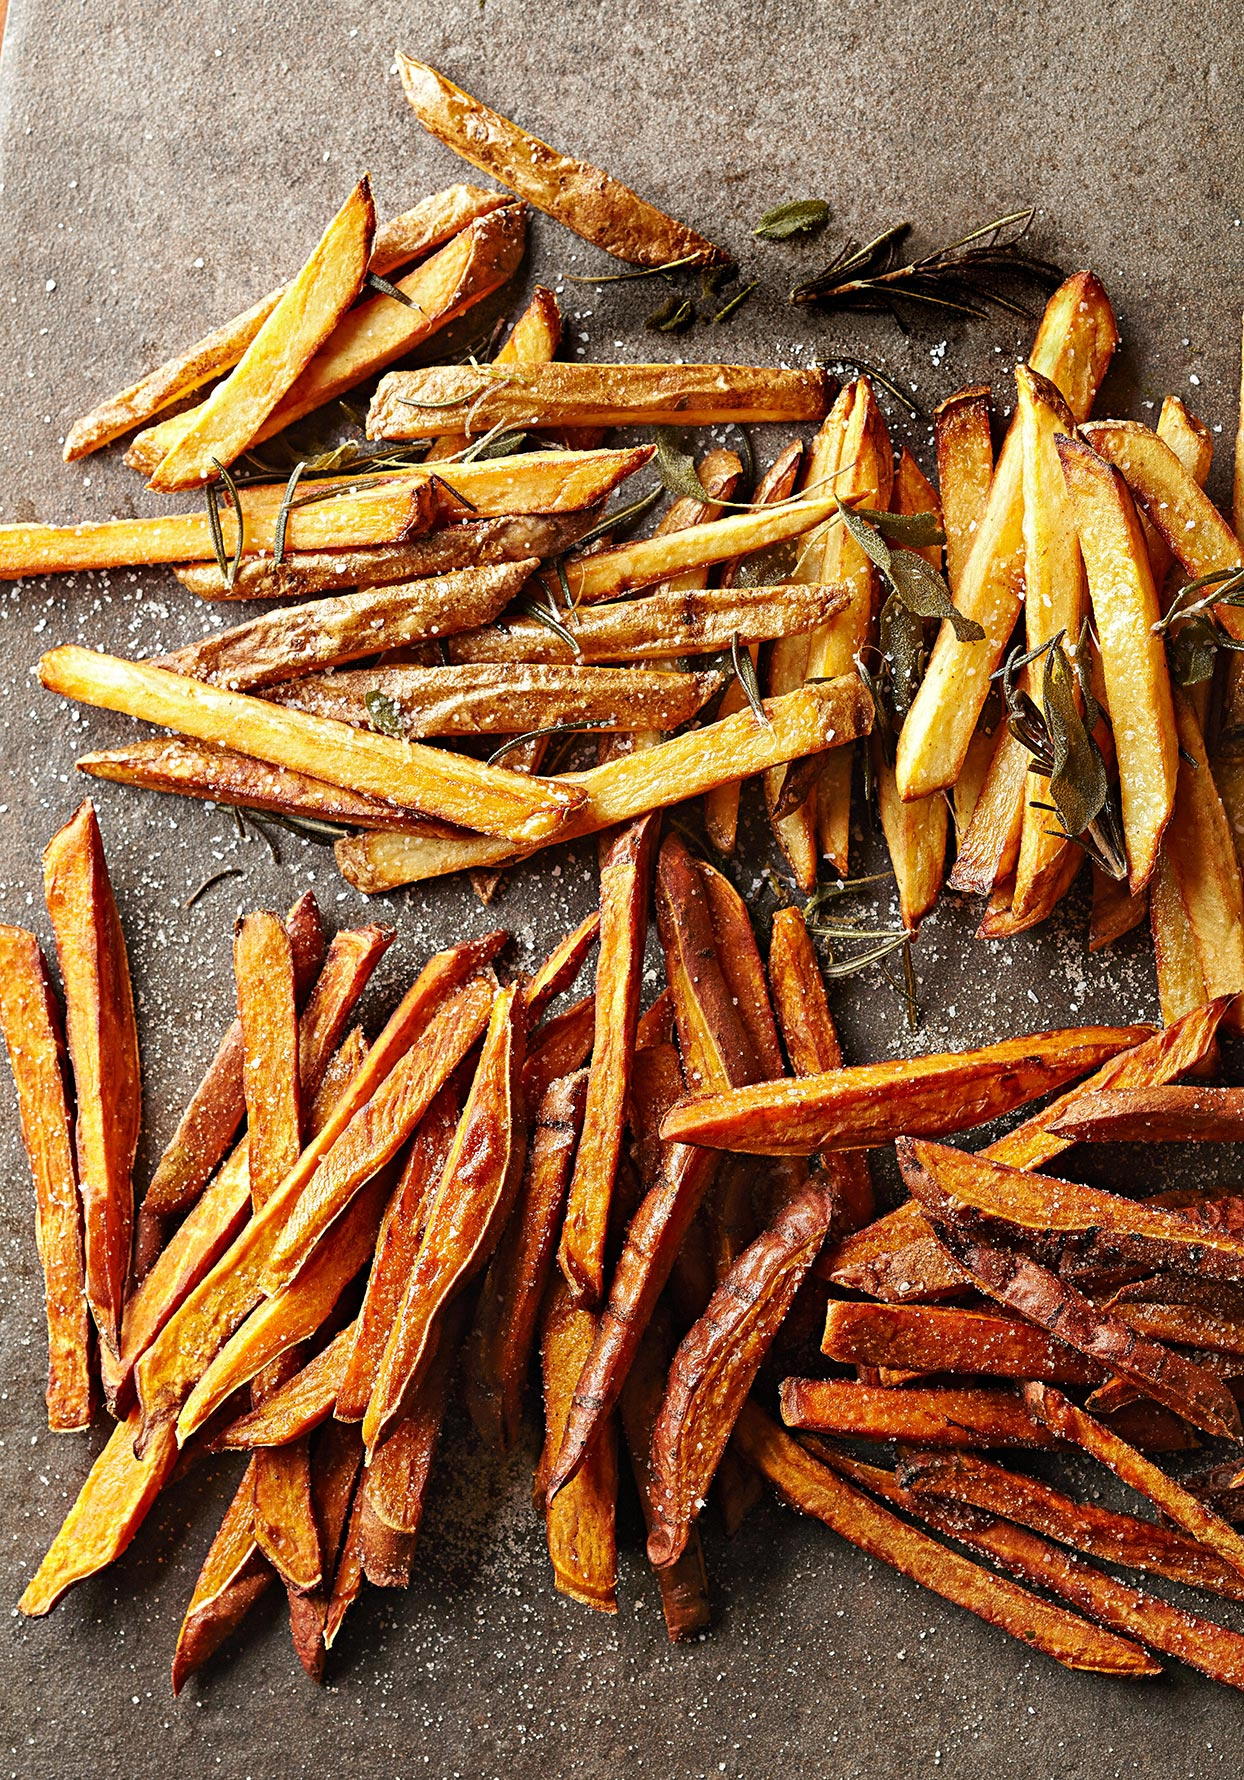 Homemade fries regular and sweet potato with herbs on dark surface